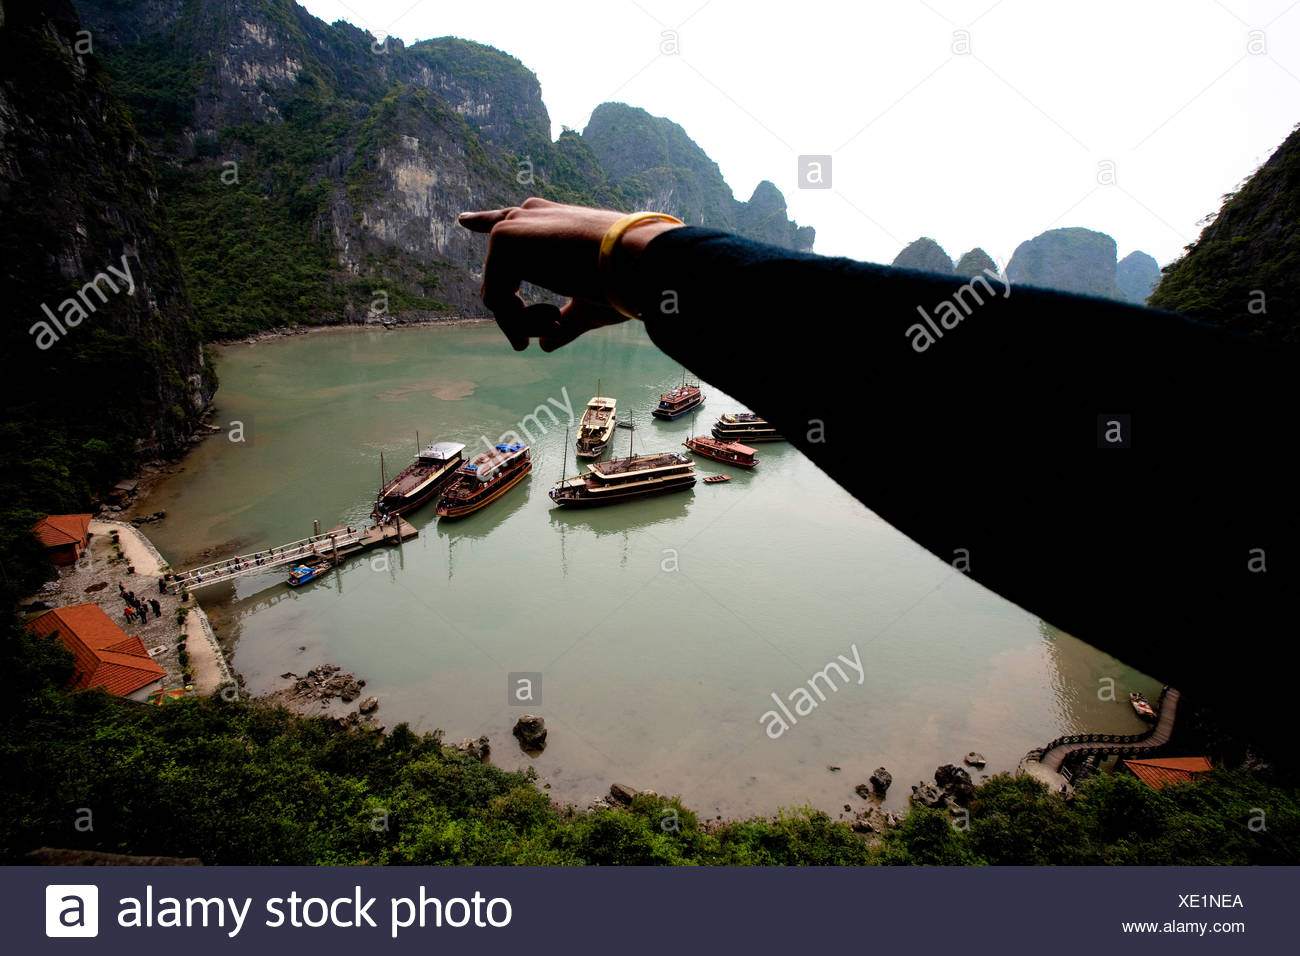 A climber points to limestone cliffs in Halong Bay, Vietnam.  Halong Bay has thousands of climbable limestone formations through - Stock Image